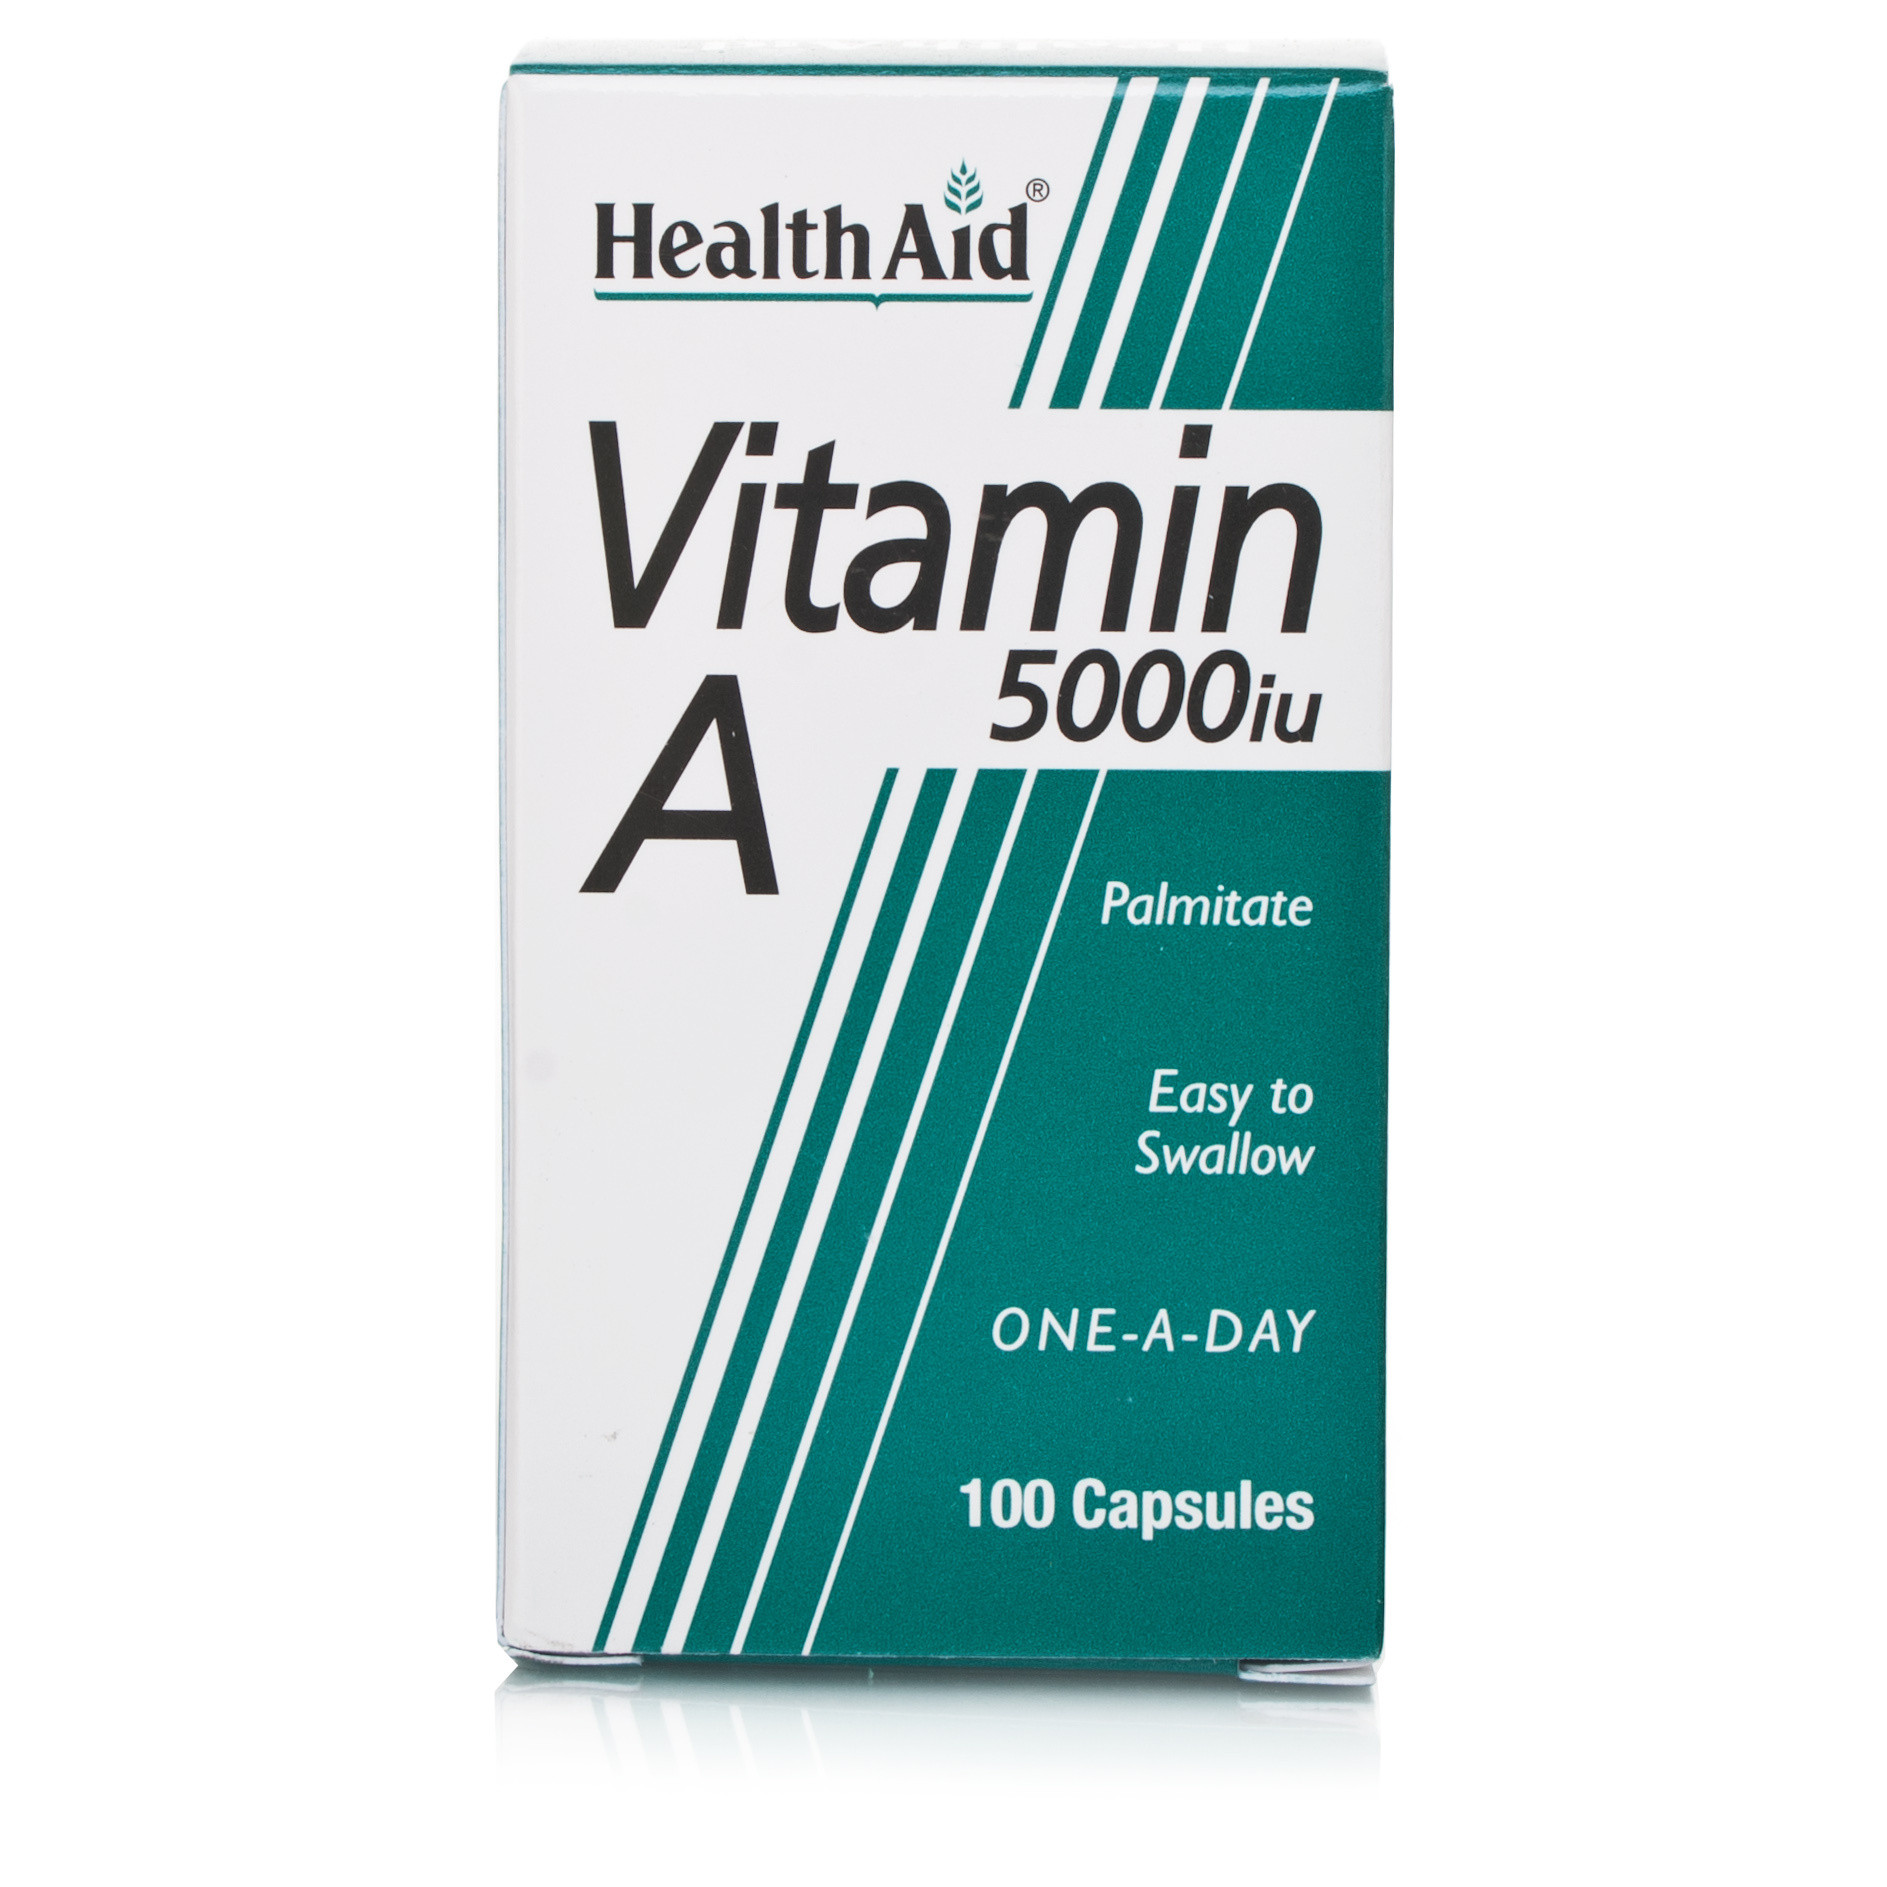 Vitamin A 5000iu Caps 100's